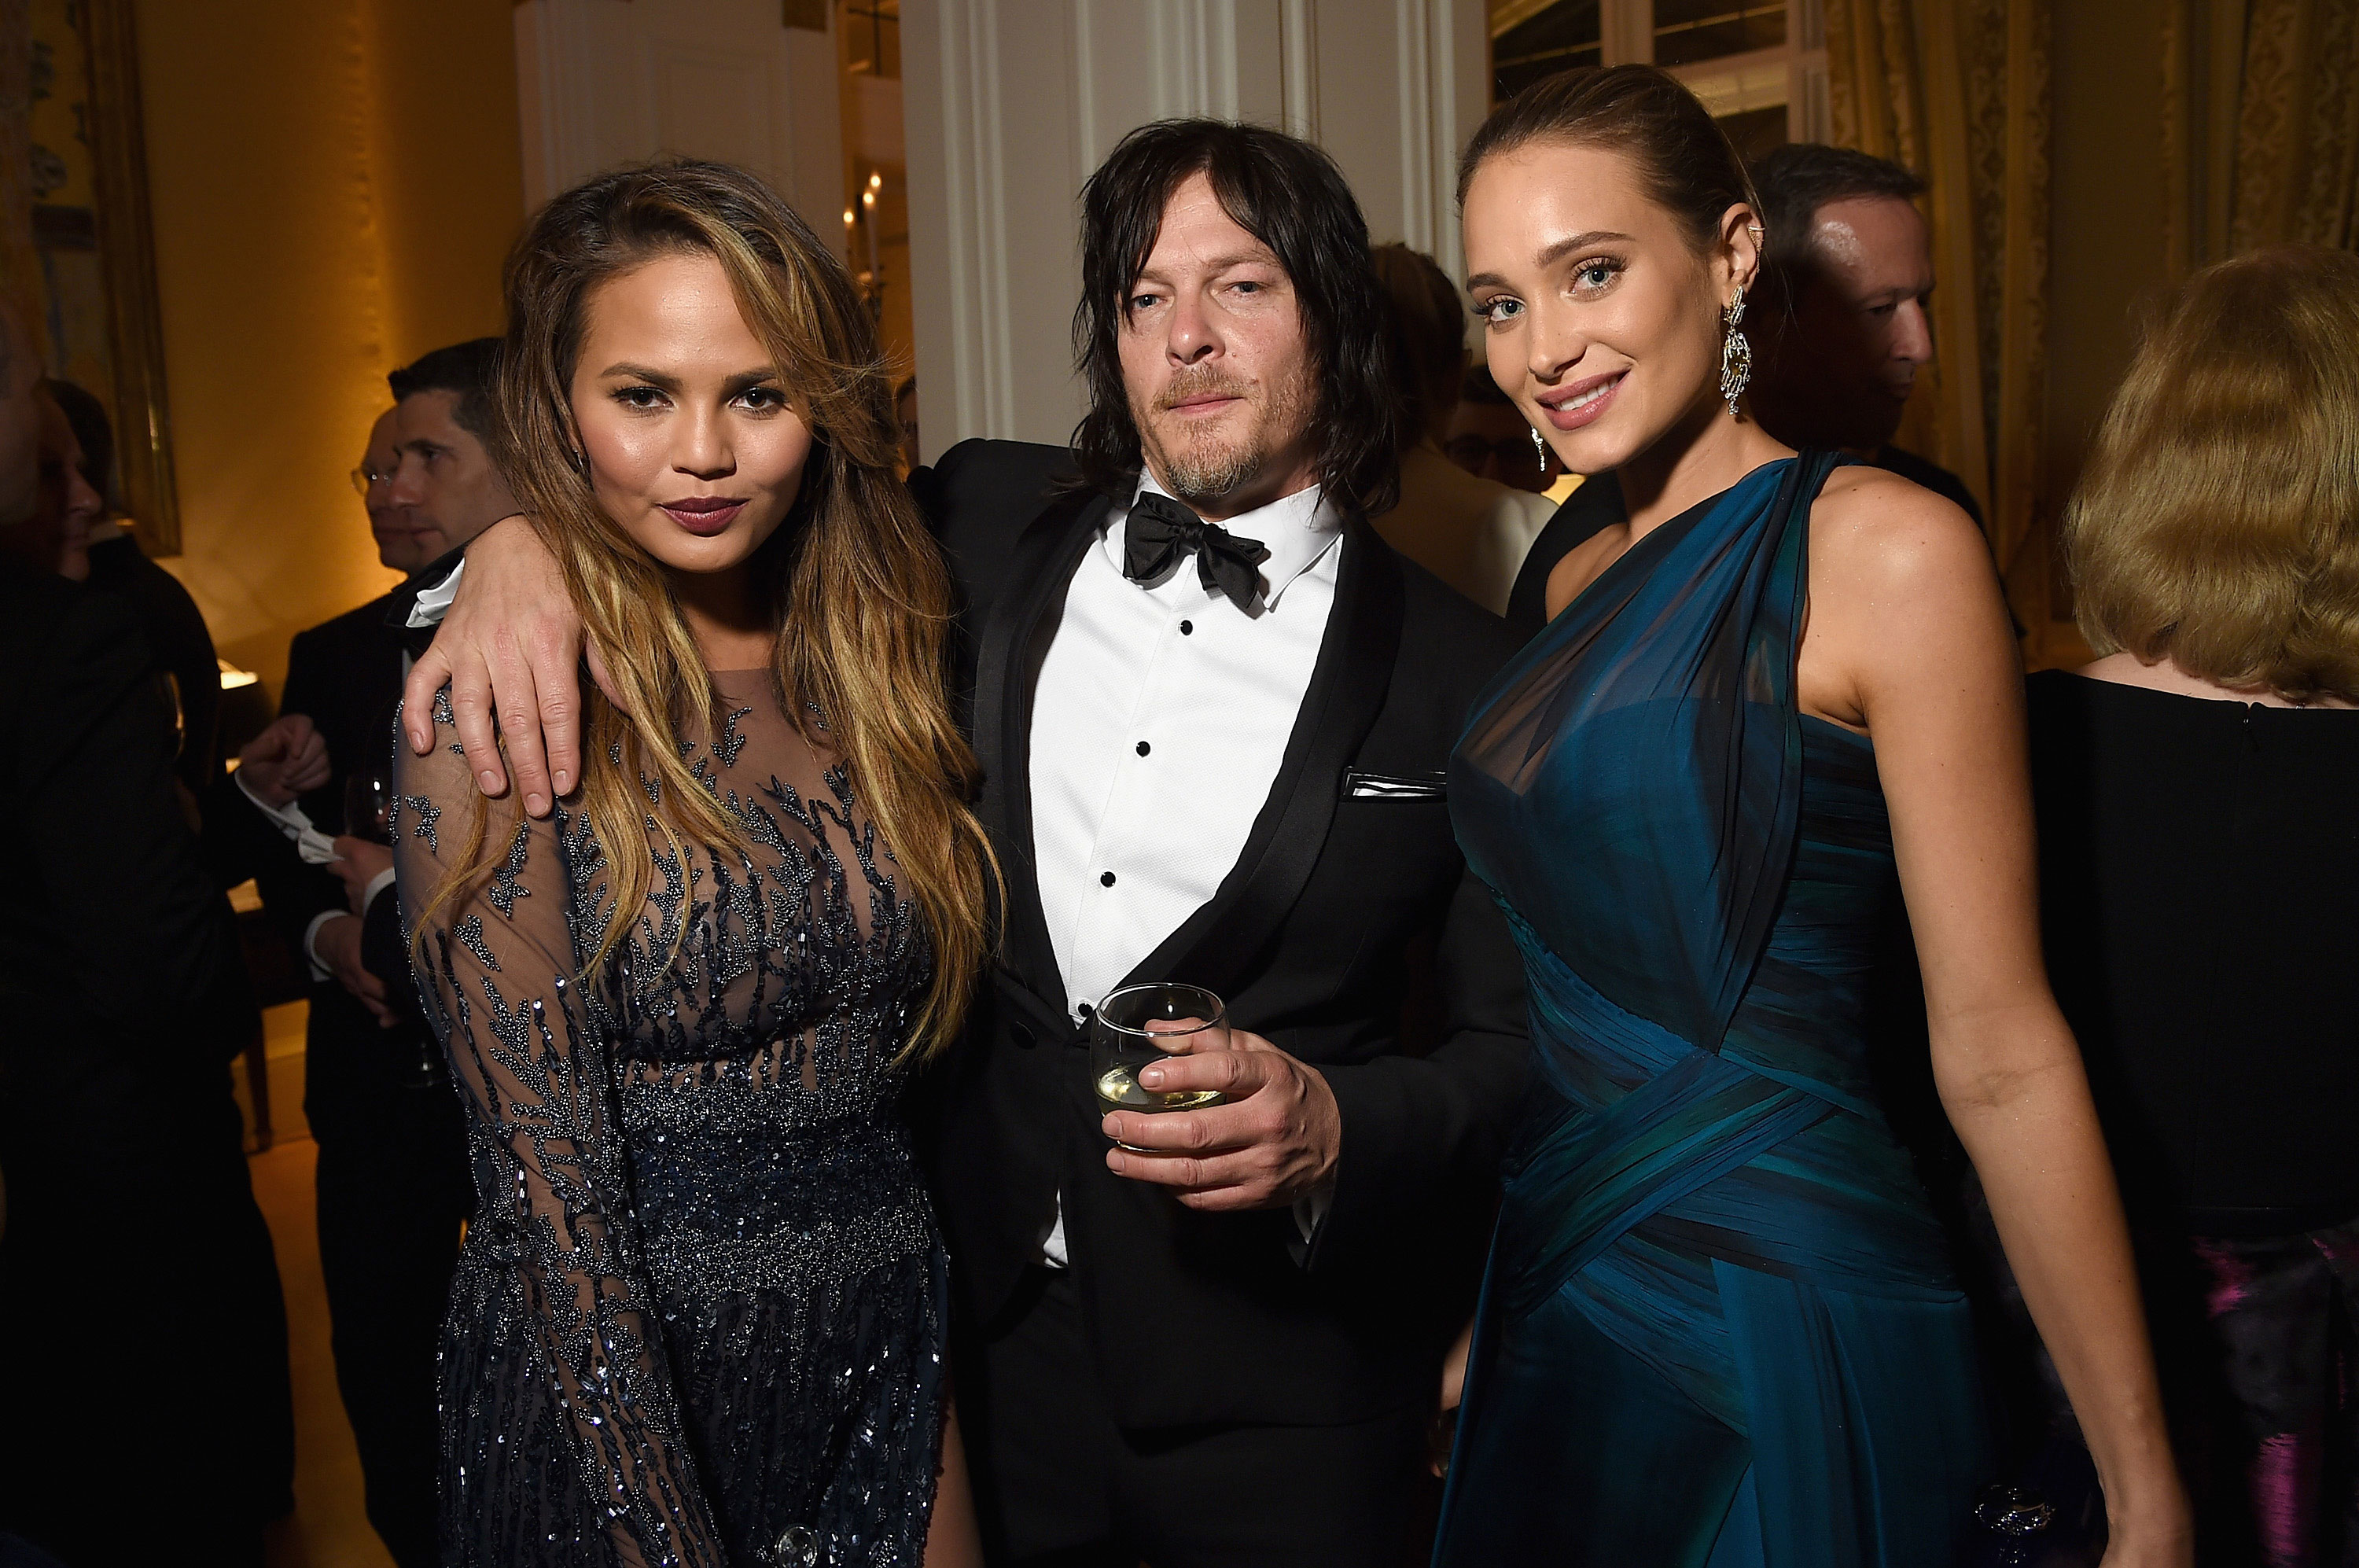 Chrissy Teigen, actor Norman Reedus and Hannah Davis attend the Bloomberg & Vanity Fair cocktail reception following the 2015 WHCA Dinner.